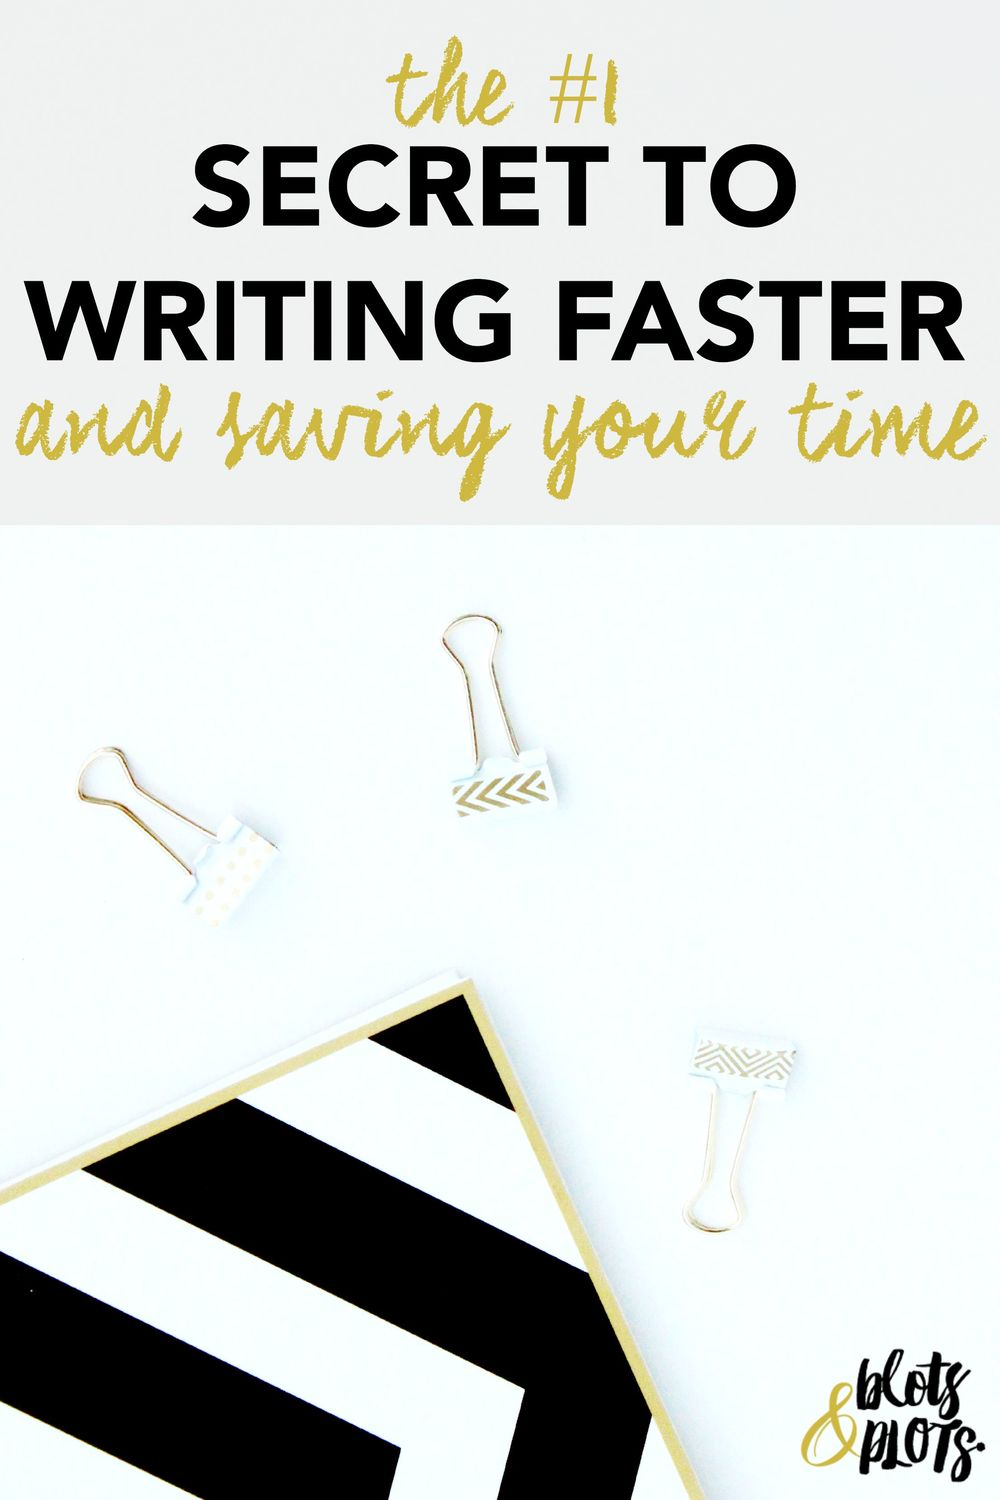 The Secret to Writing Faster and Saving Your Time